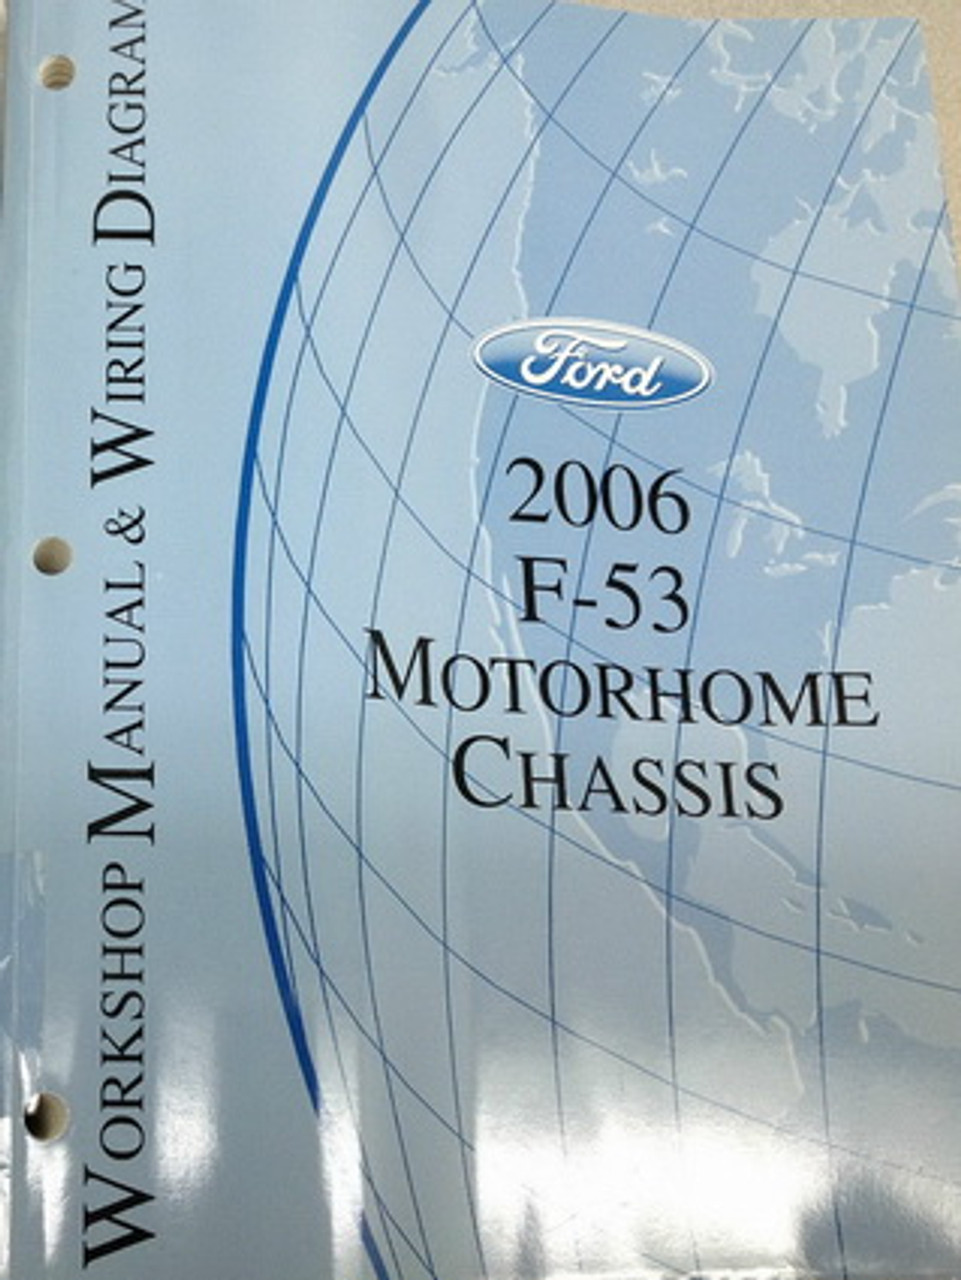 2006 ford f550 wiring schematic 2006 ford f53 motorhome chassis factory shop service manual  2006 ford f53 motorhome chassis factory